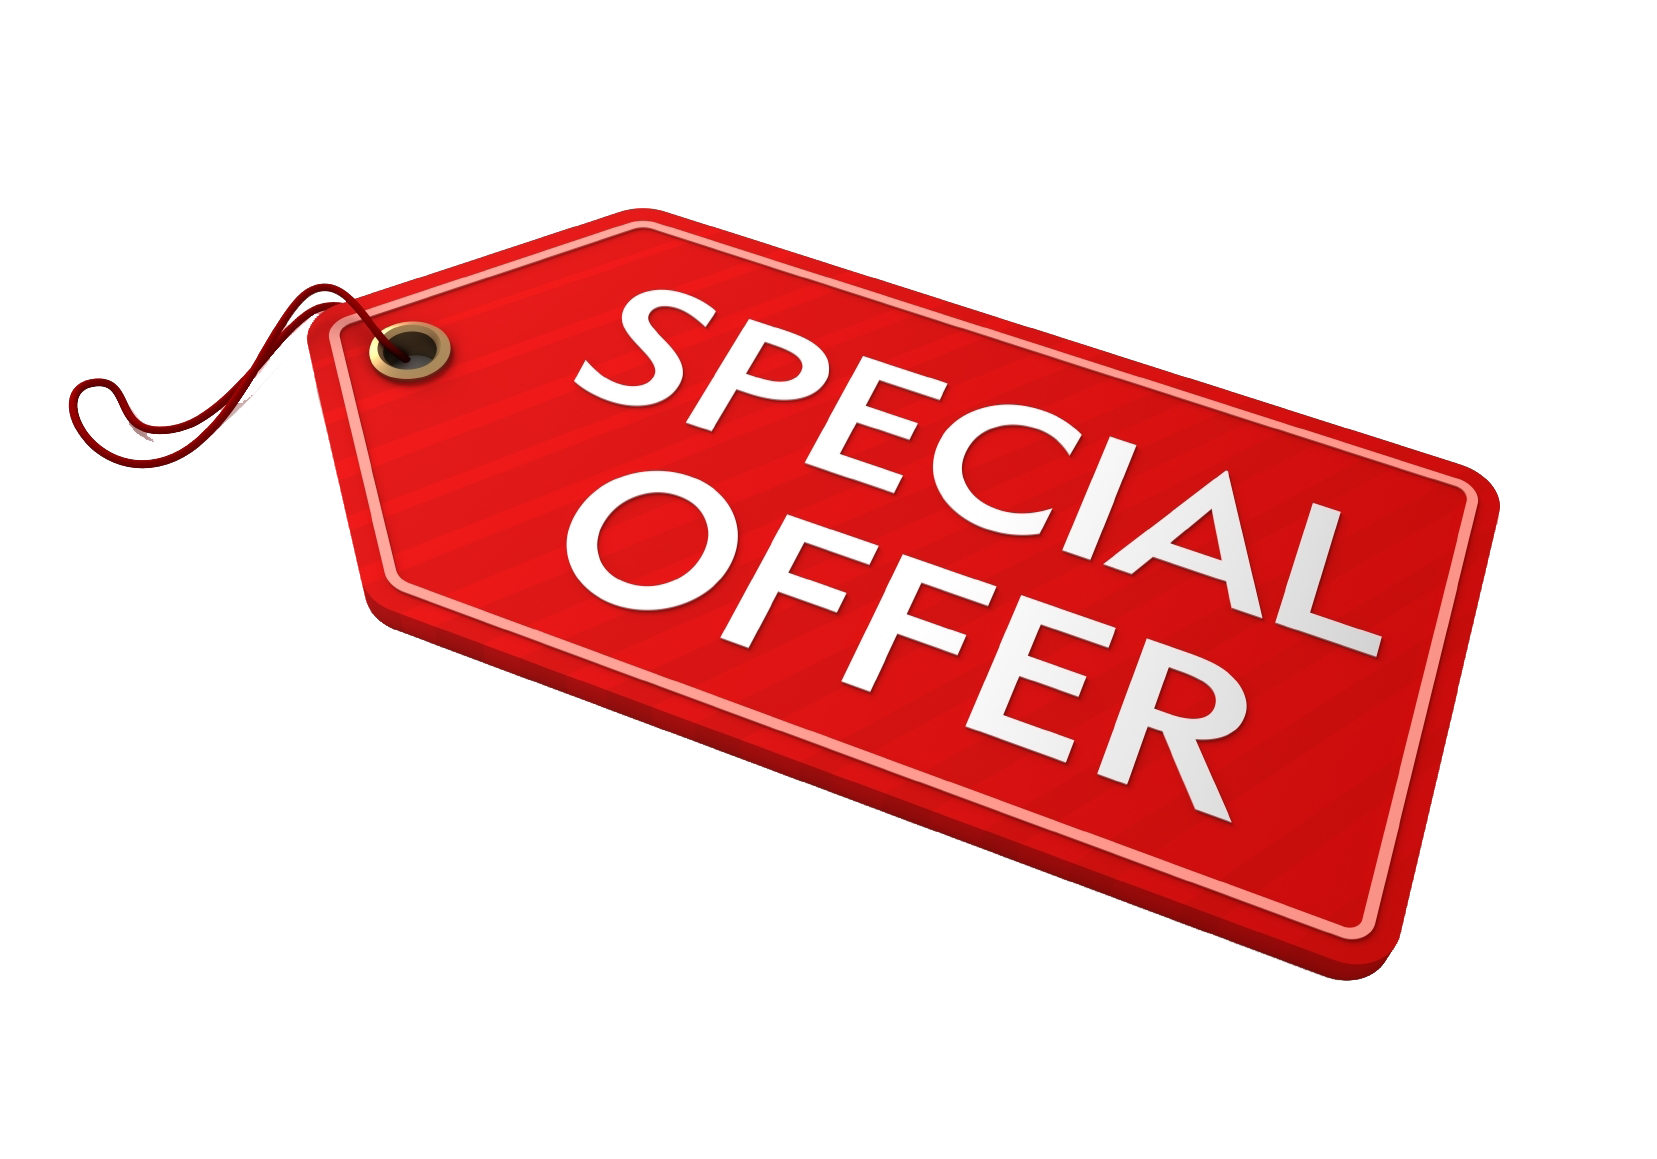 Special-offer-Download-PNG